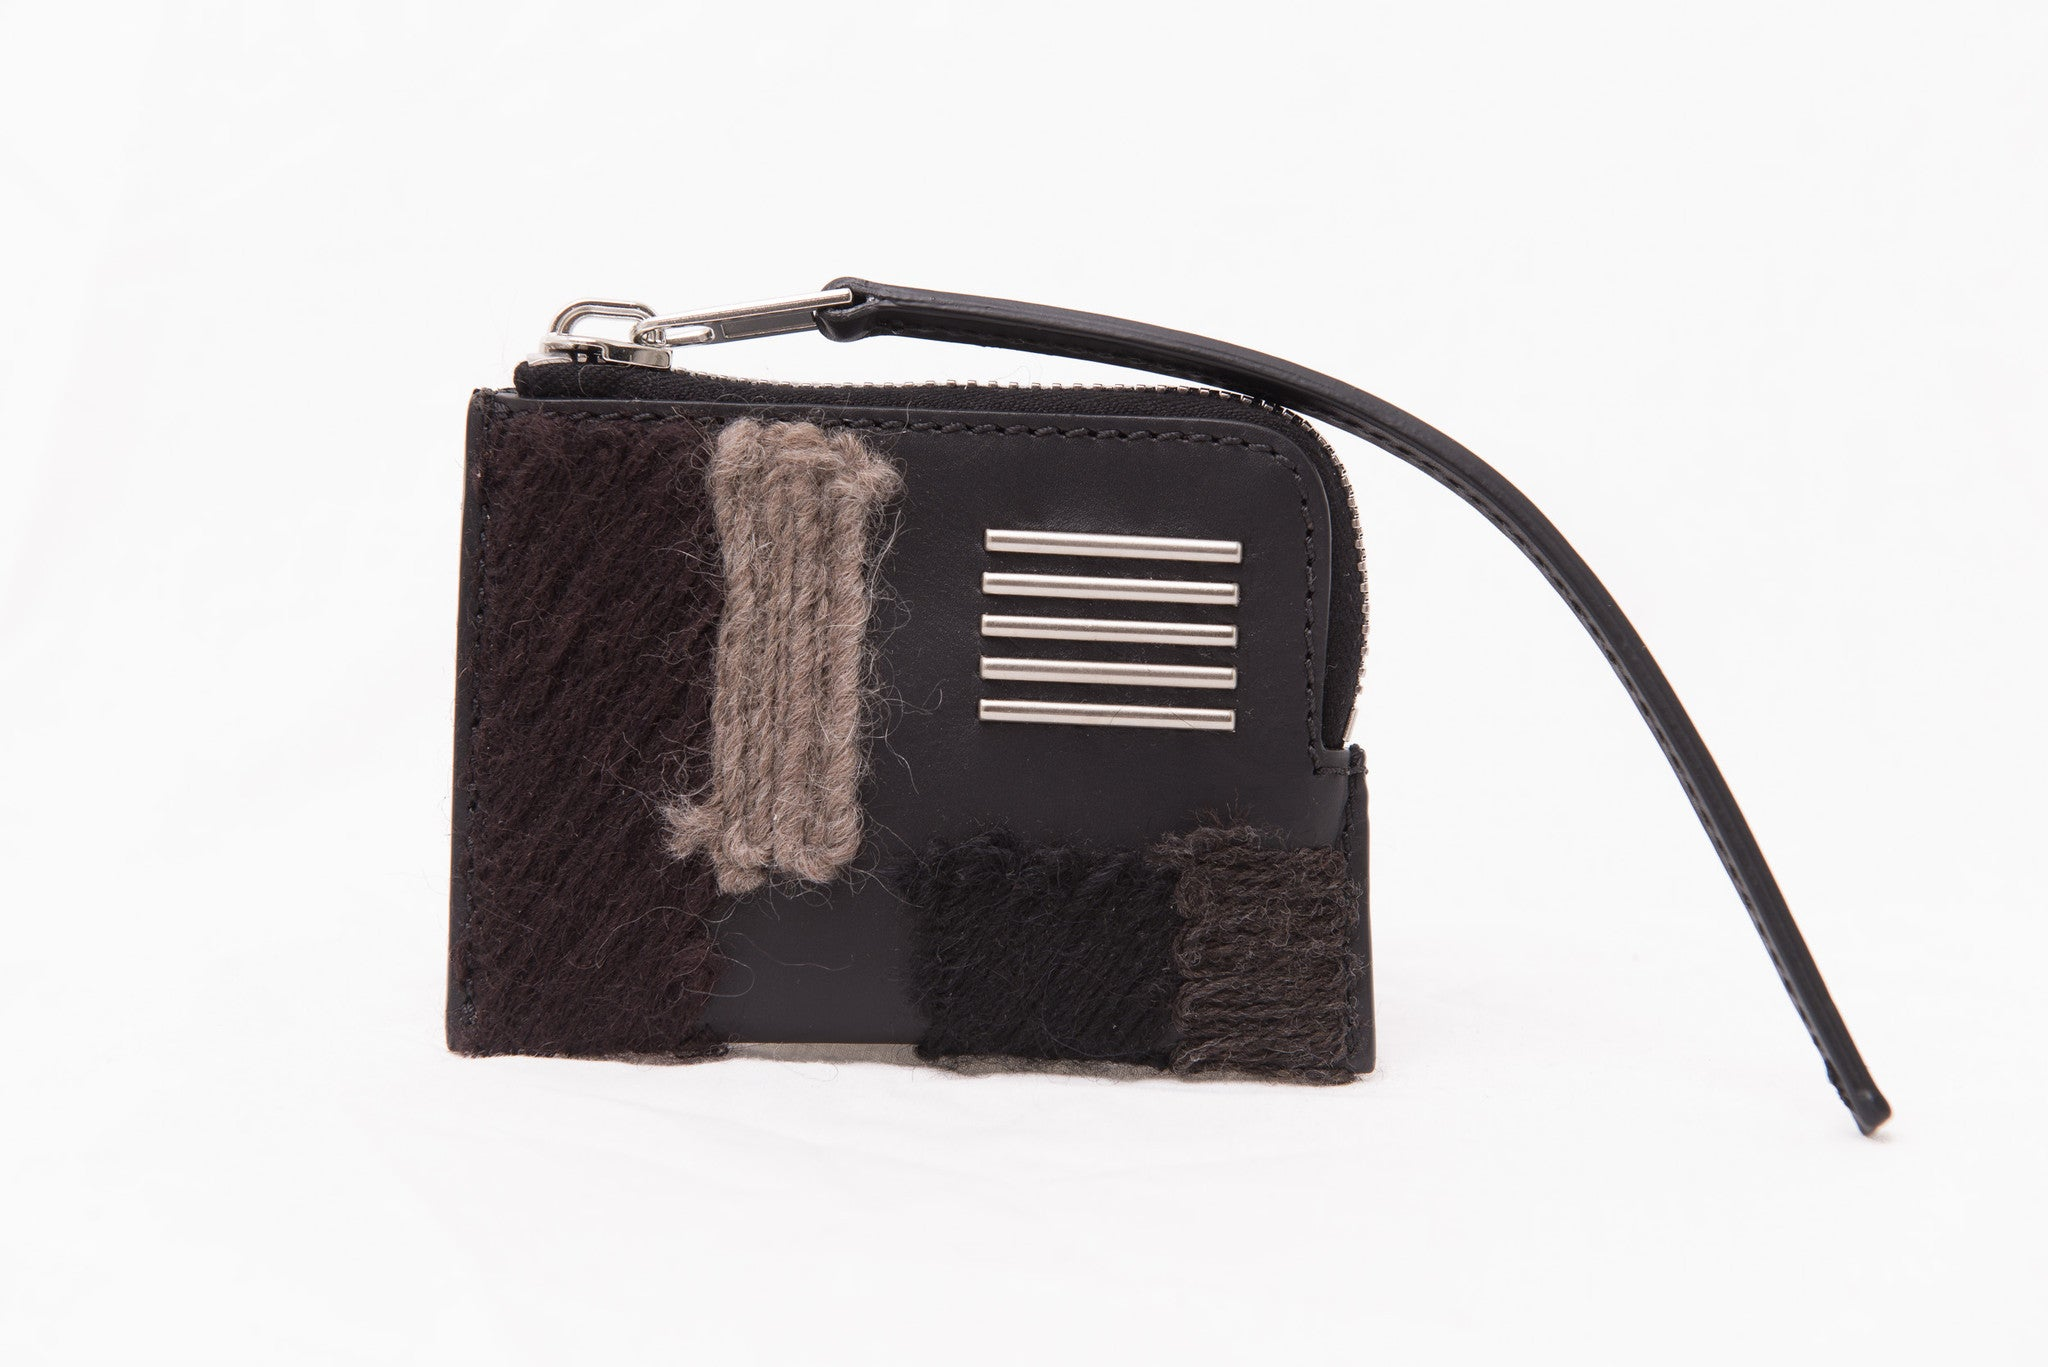 RICK OWENS embroidered leather pouch